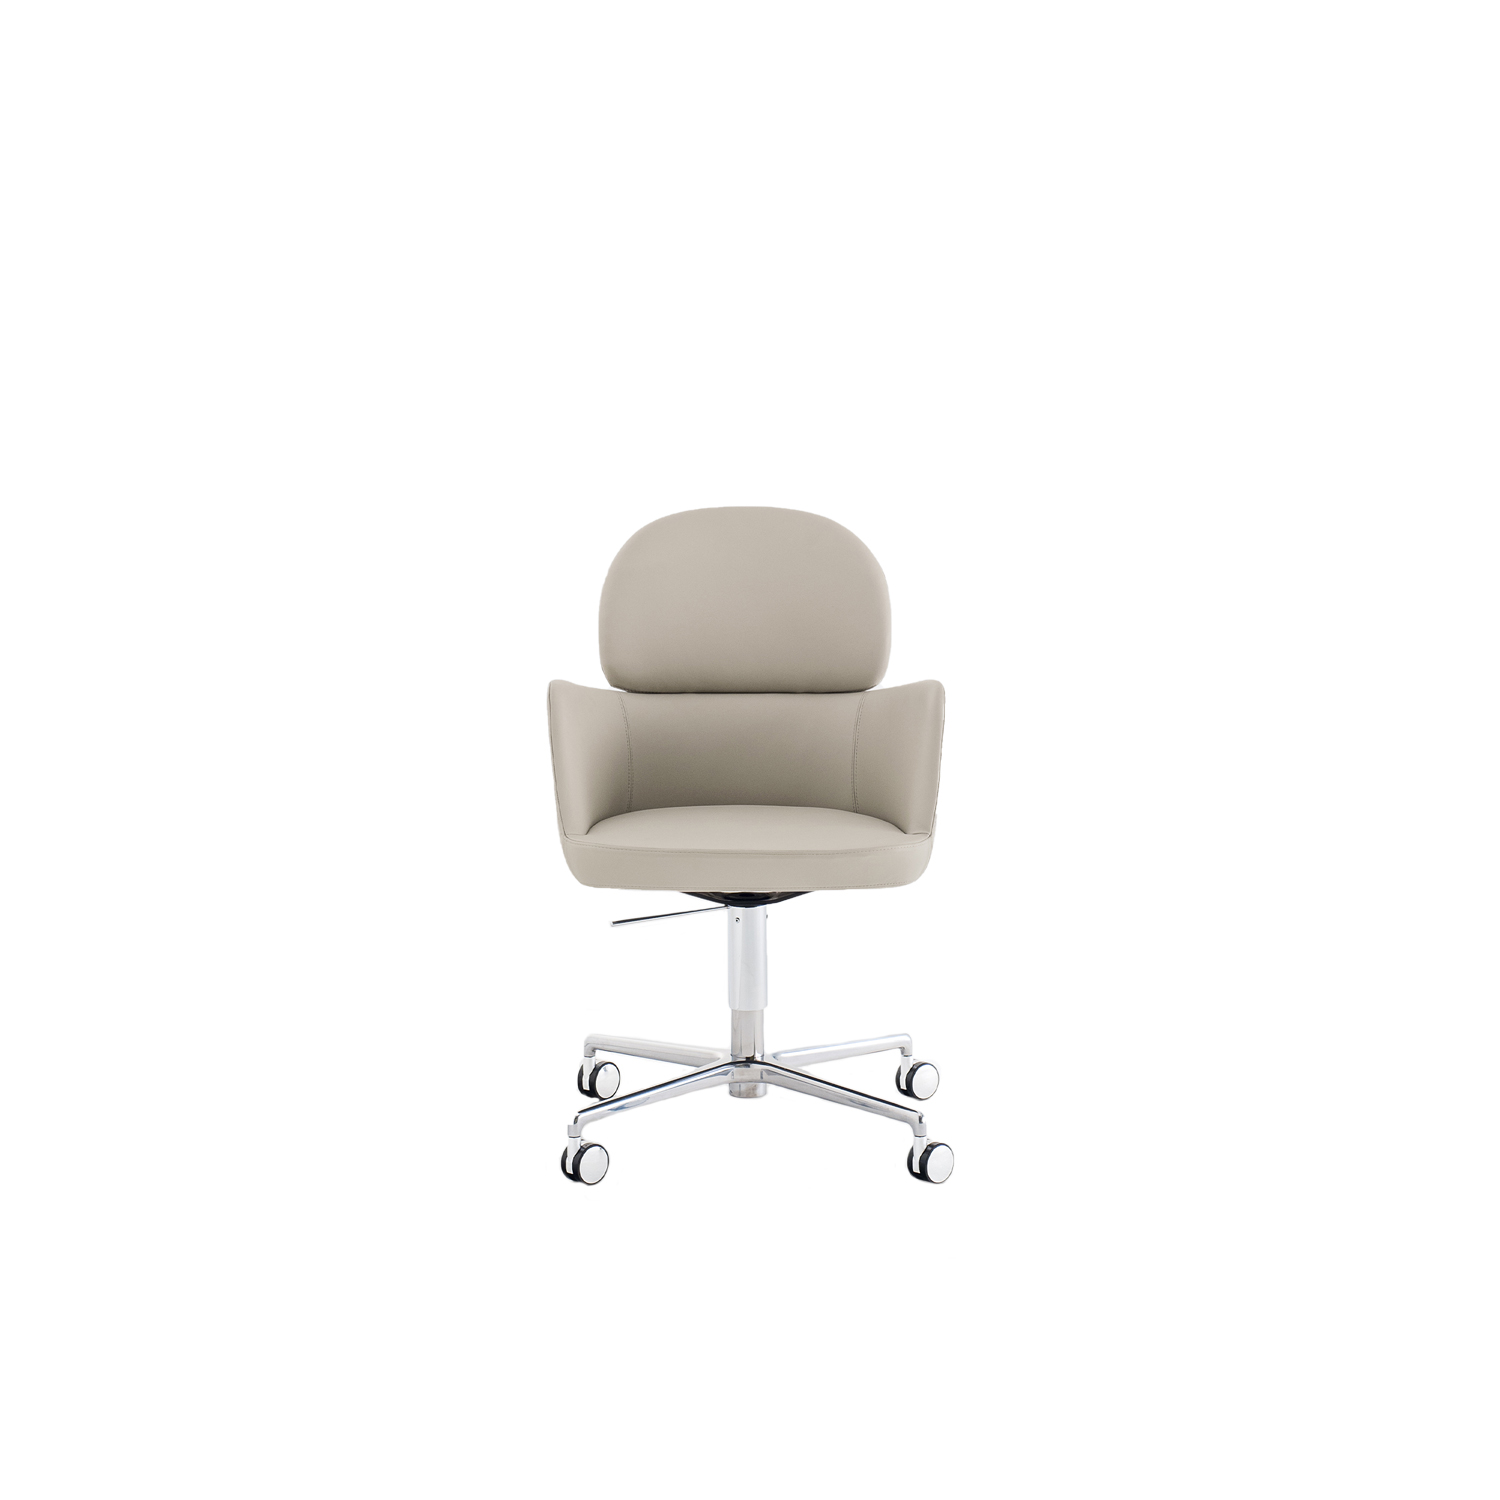 Ester Swivel Armchair - Ester is a mix of elegance, ergonomics and functionality. The soft and graceful lines and the great comfort offered by the seat distinguish the interior of the most exclusive restaurants, offices and hotels in the international scenario. Swivel armchair with the gas device, high backrest, upholstered shell in polyurethane foam with elastic belts. Die-cast four-star aluminium central base with castors | Matter of Stuff